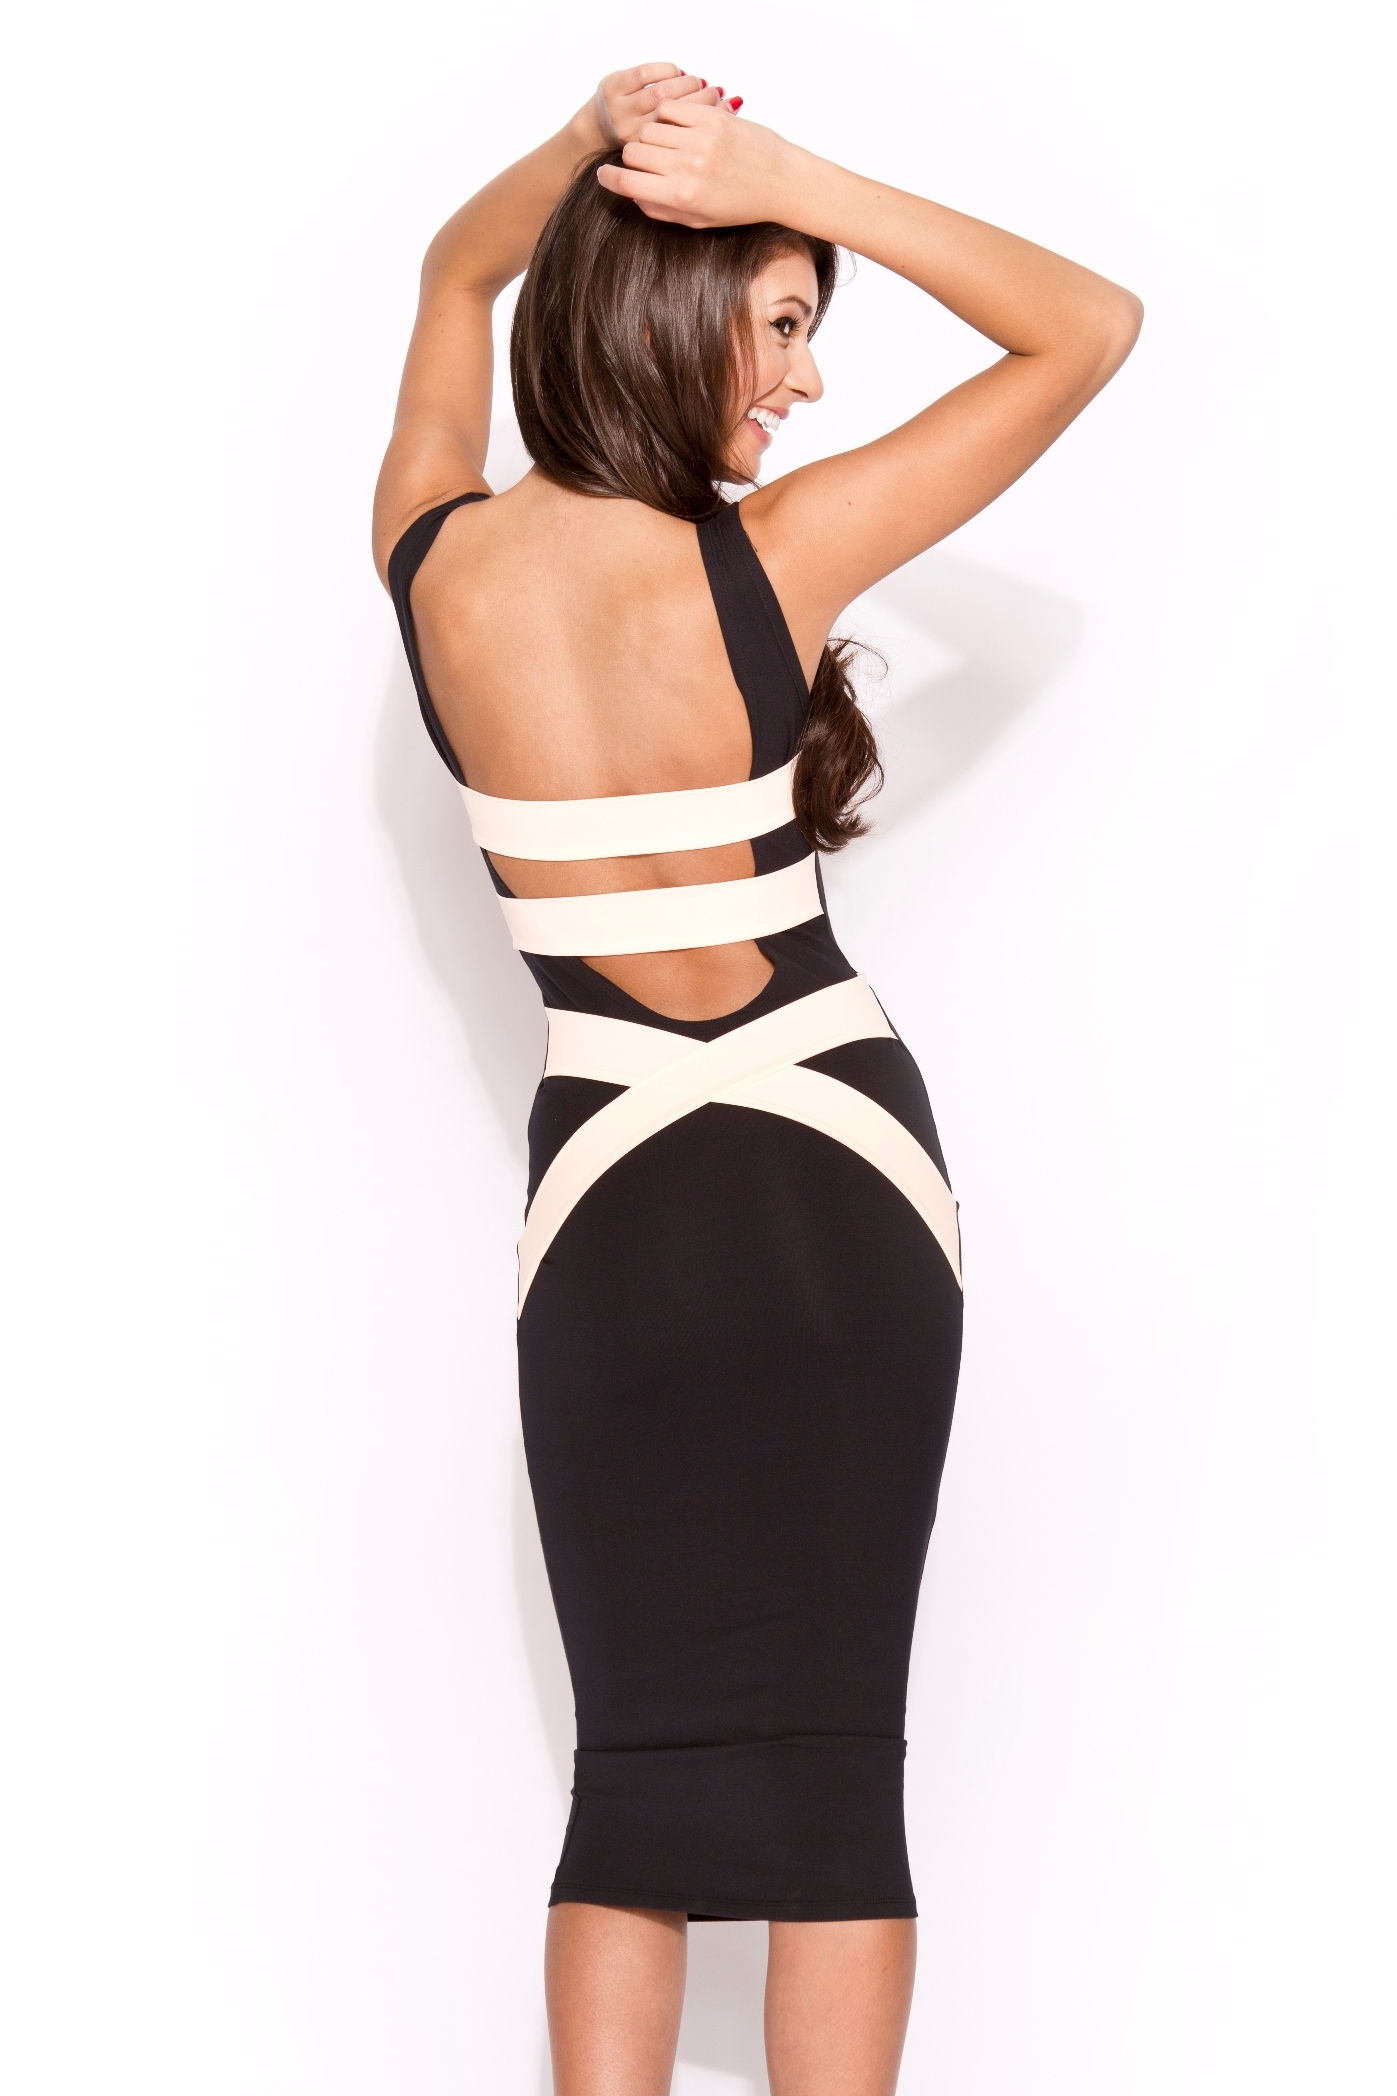 Black Little Black Dress - Q1056 Quontum Peach/Nude Strap Midi | UsTrendy